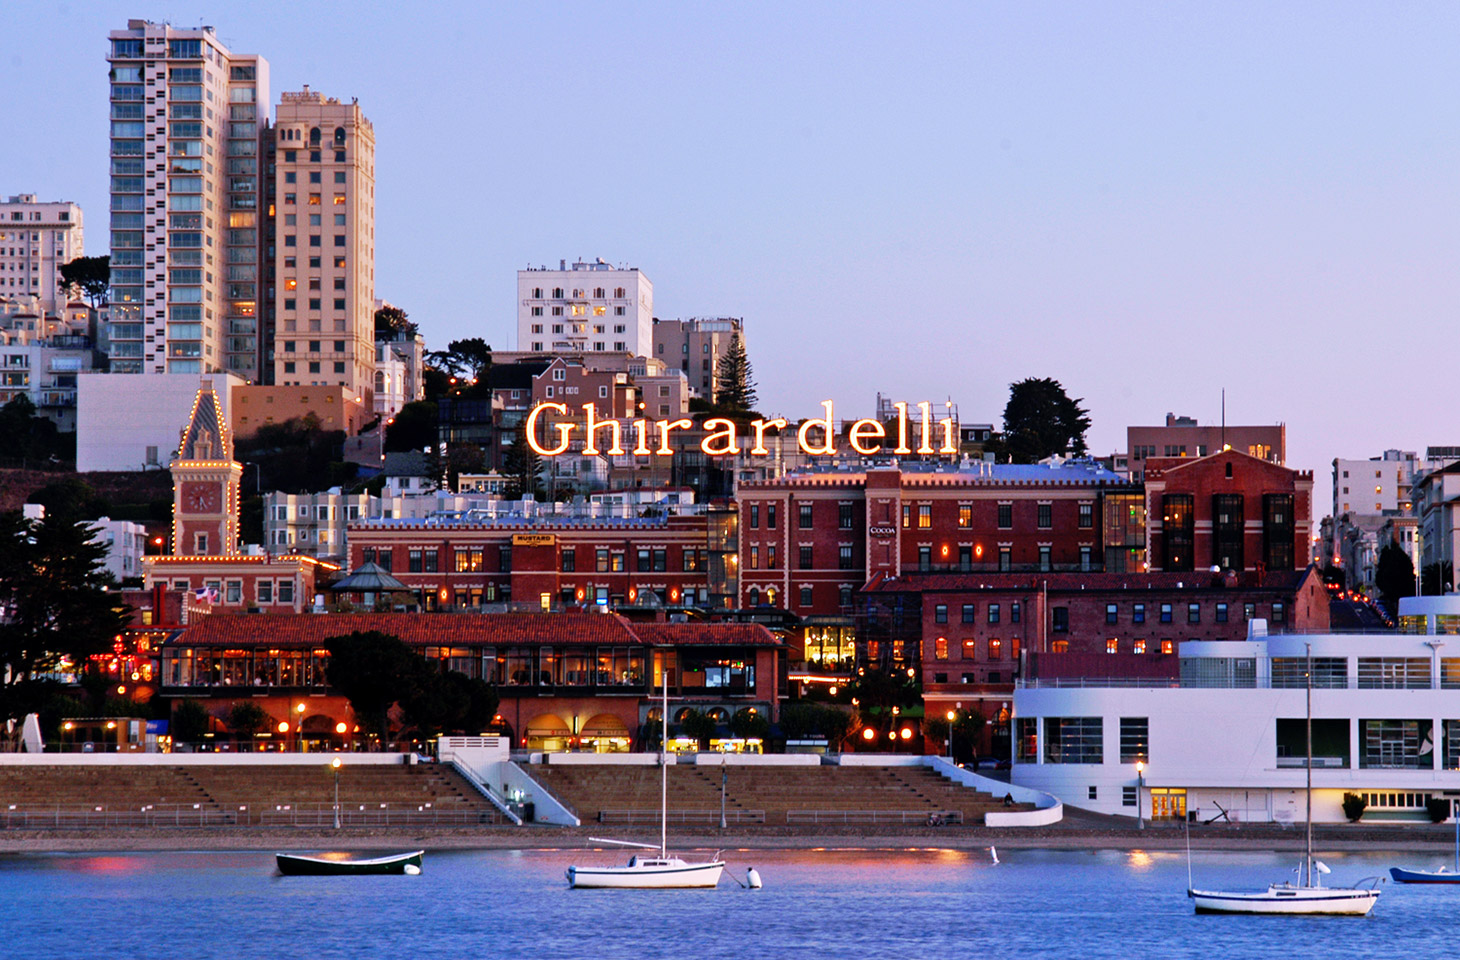 Ghirardelli Square is home to upscale shops, wine bars and the famed Ghirardelli chocolate company.